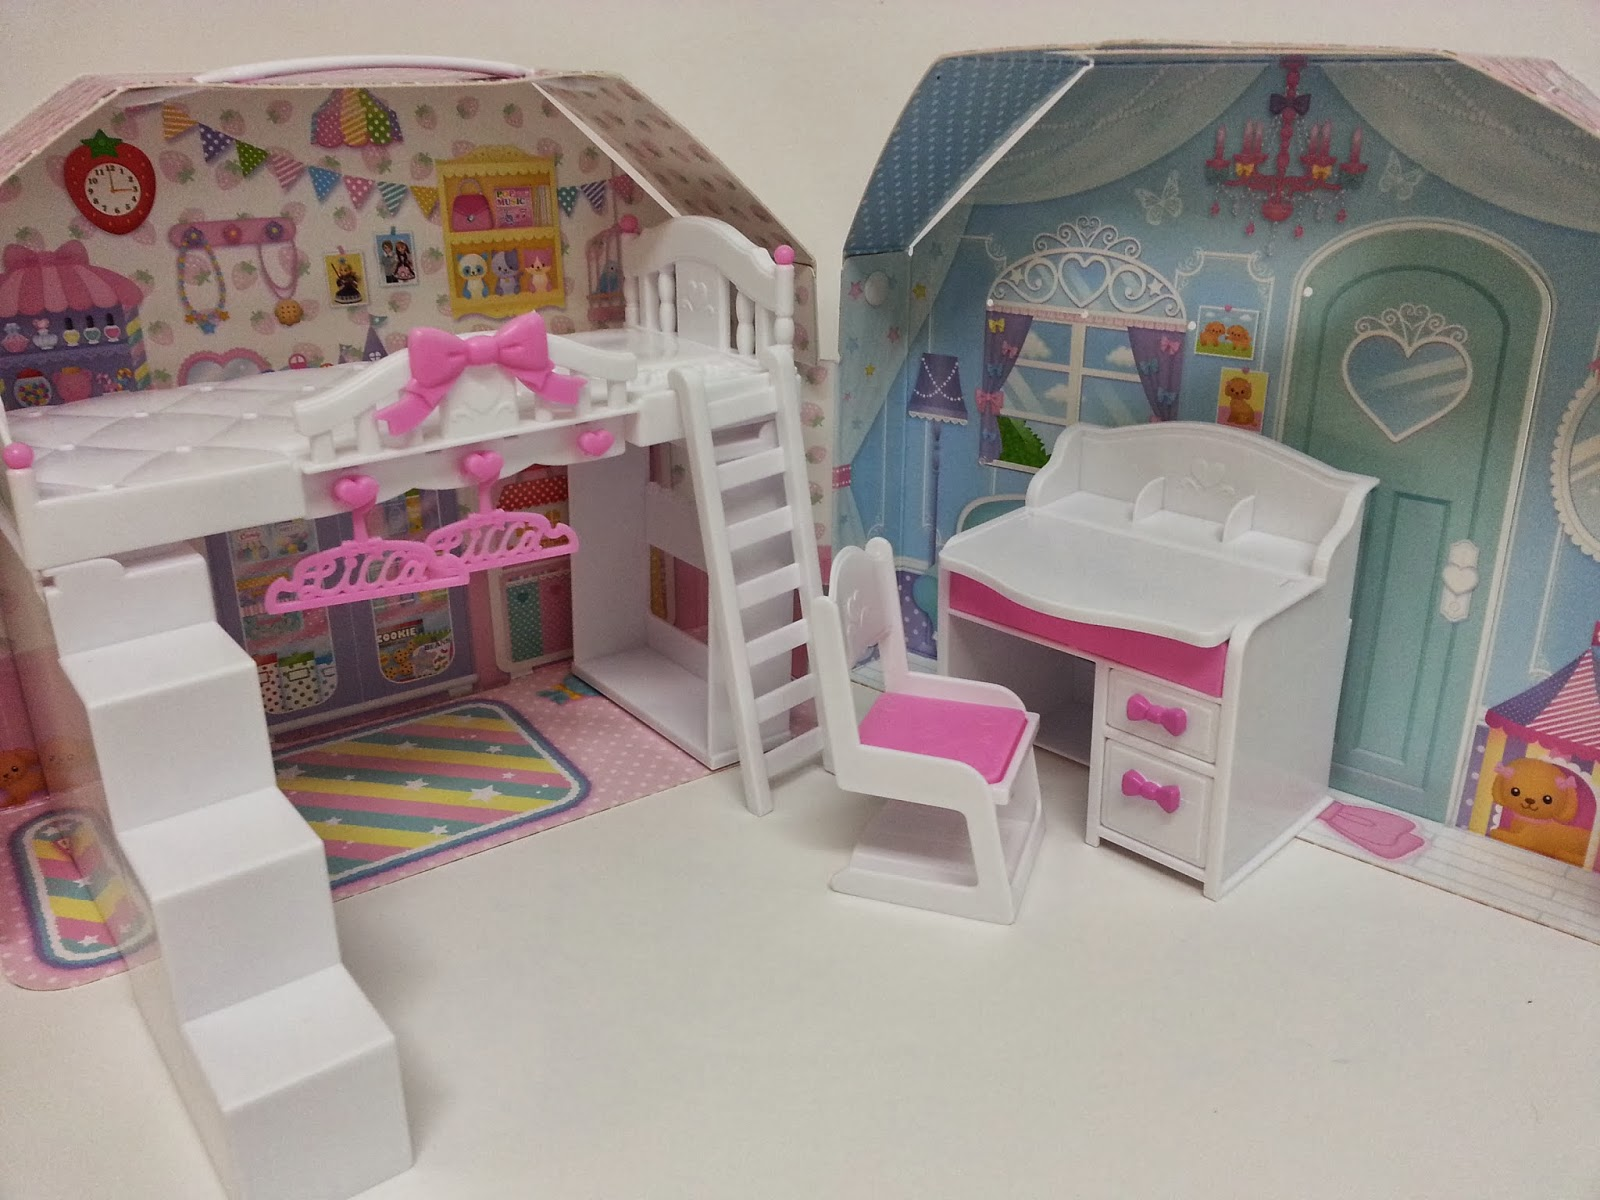 Lalaloopsy Bedroom Furniture Jane Chacrie January 2014